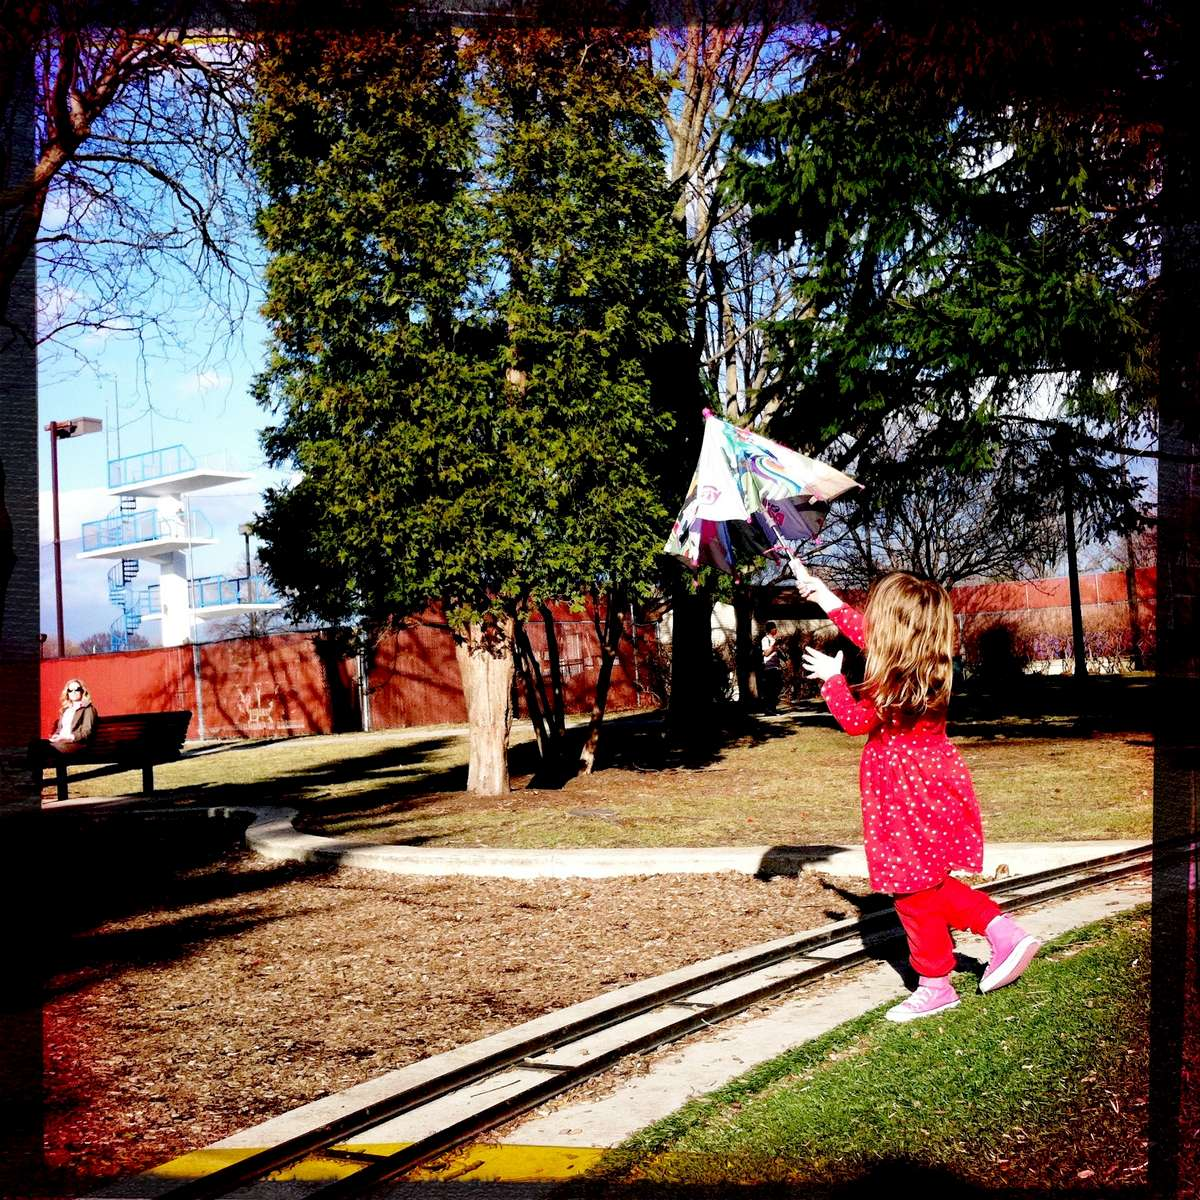 Rose dances with an umbrella she found at the park. March 2016.